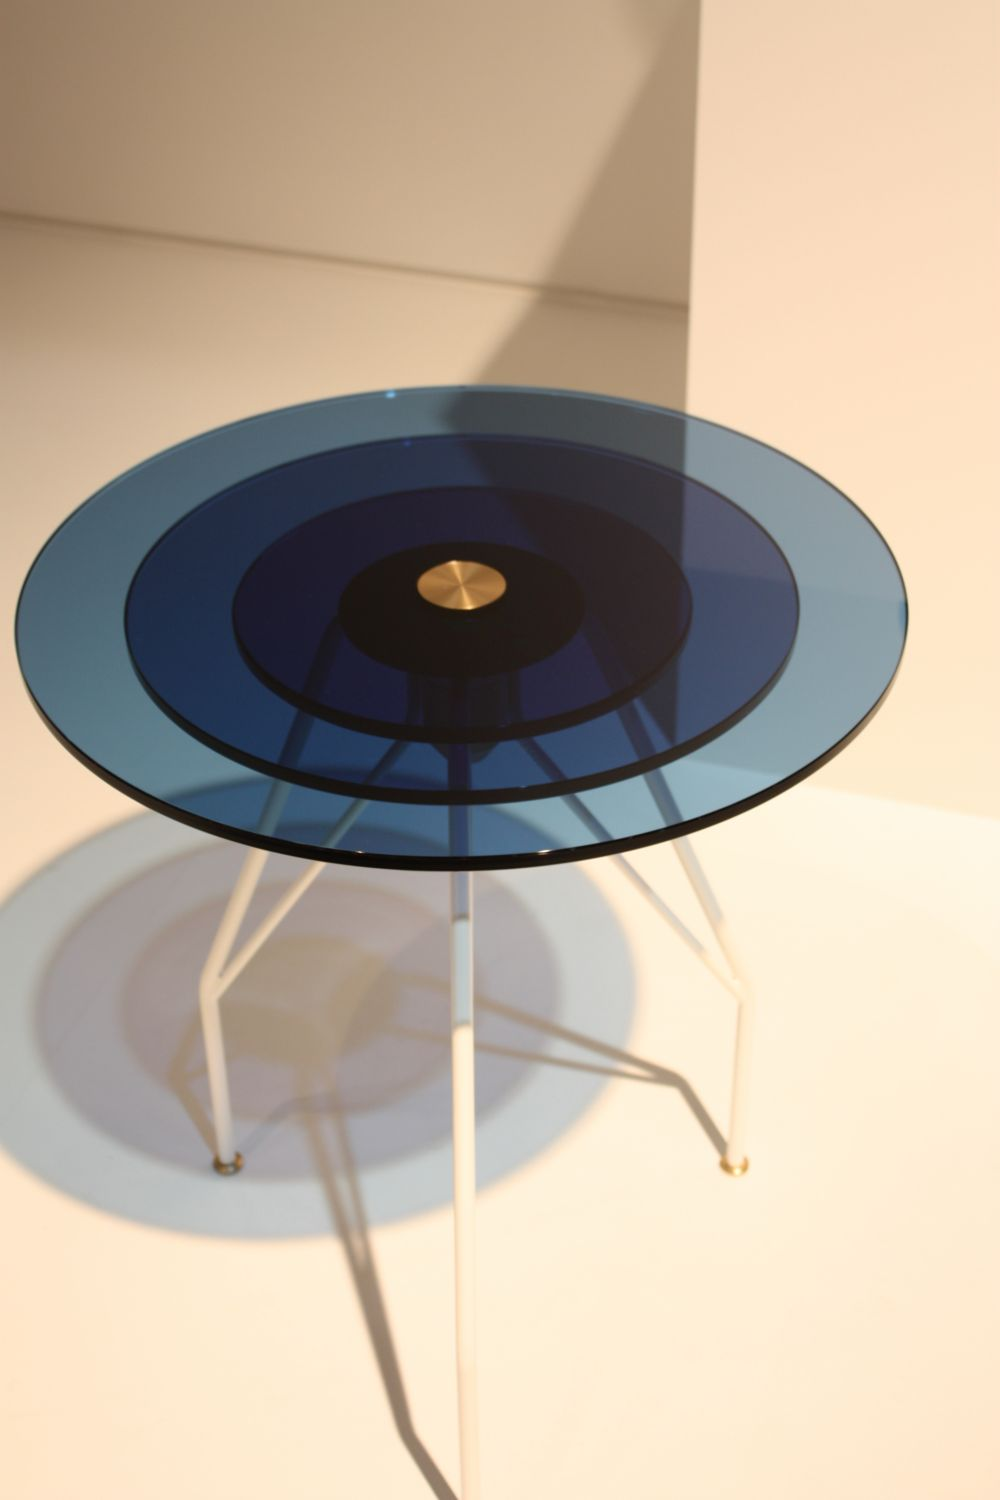 The concentric circles that make up the top of this table create a beautiful ombre effect